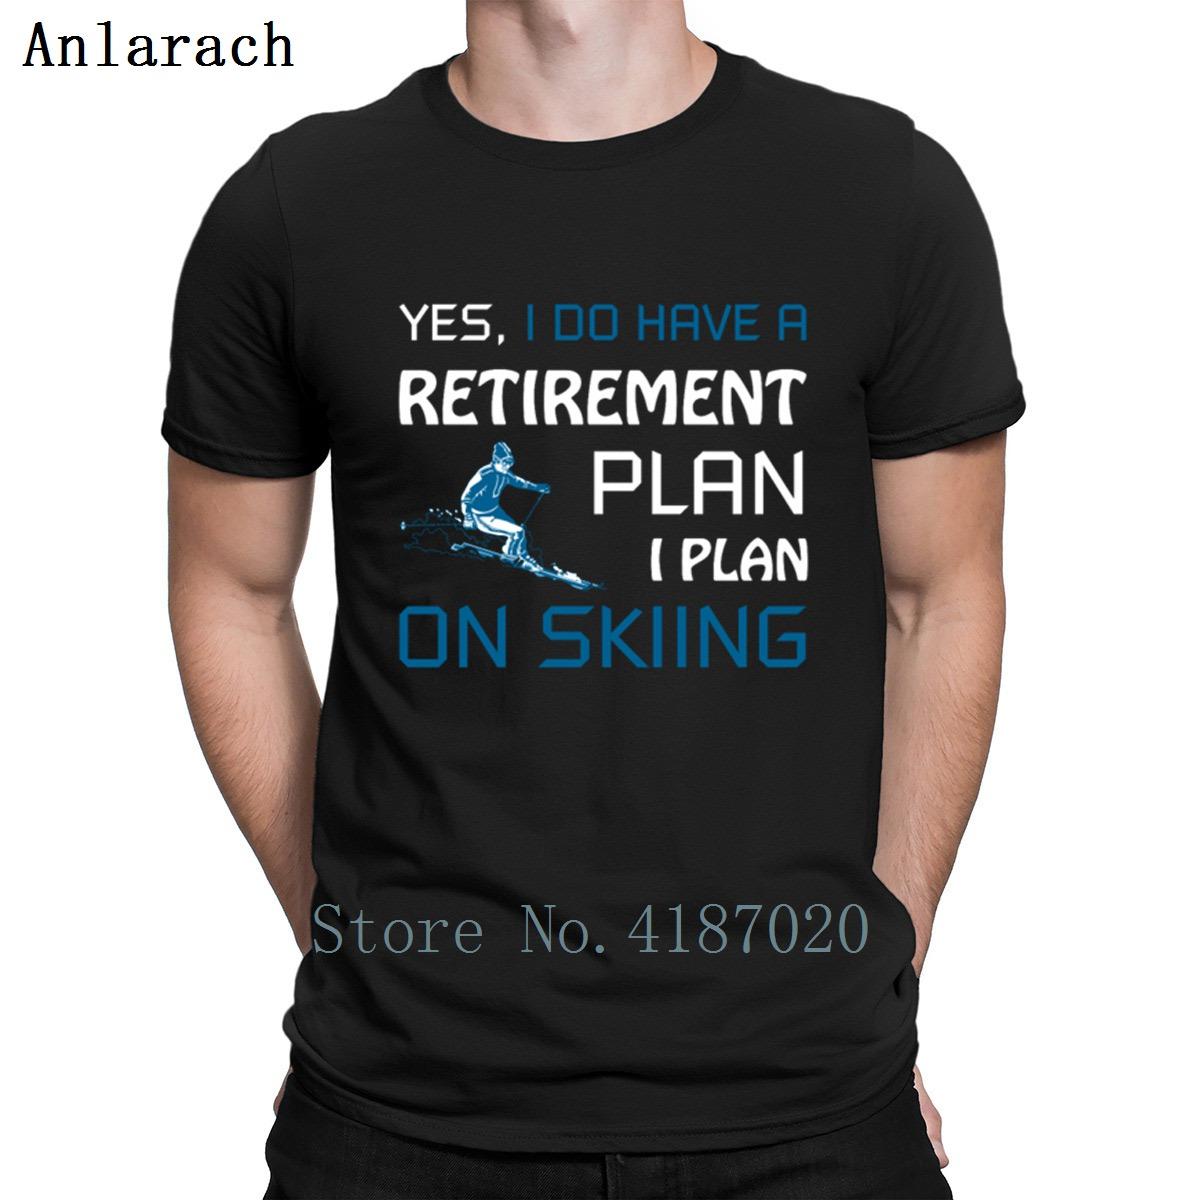 Yes i Do Have A Retirement Plan I Plan On Skiing T Shirt Design Formal Euro Size S-3xl 2018 T Shirt Clothes Family Hiphop Tops image